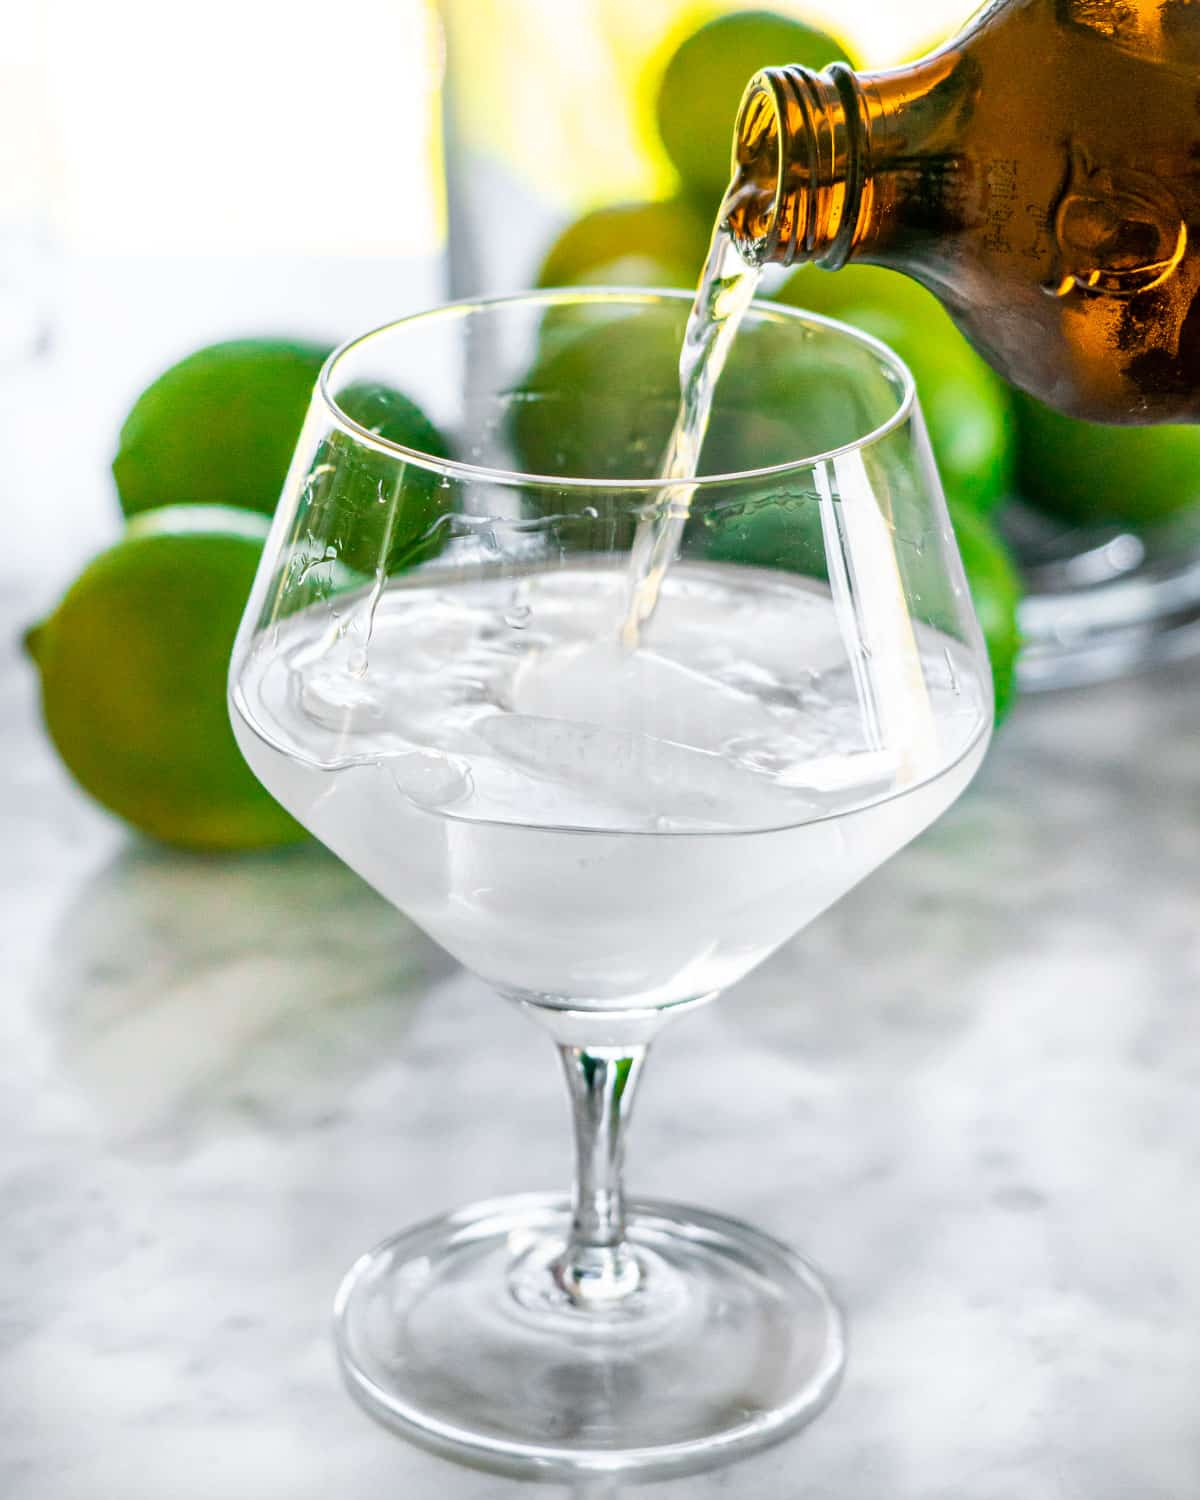 a hand pouring tonic water in a glass with ice and gin